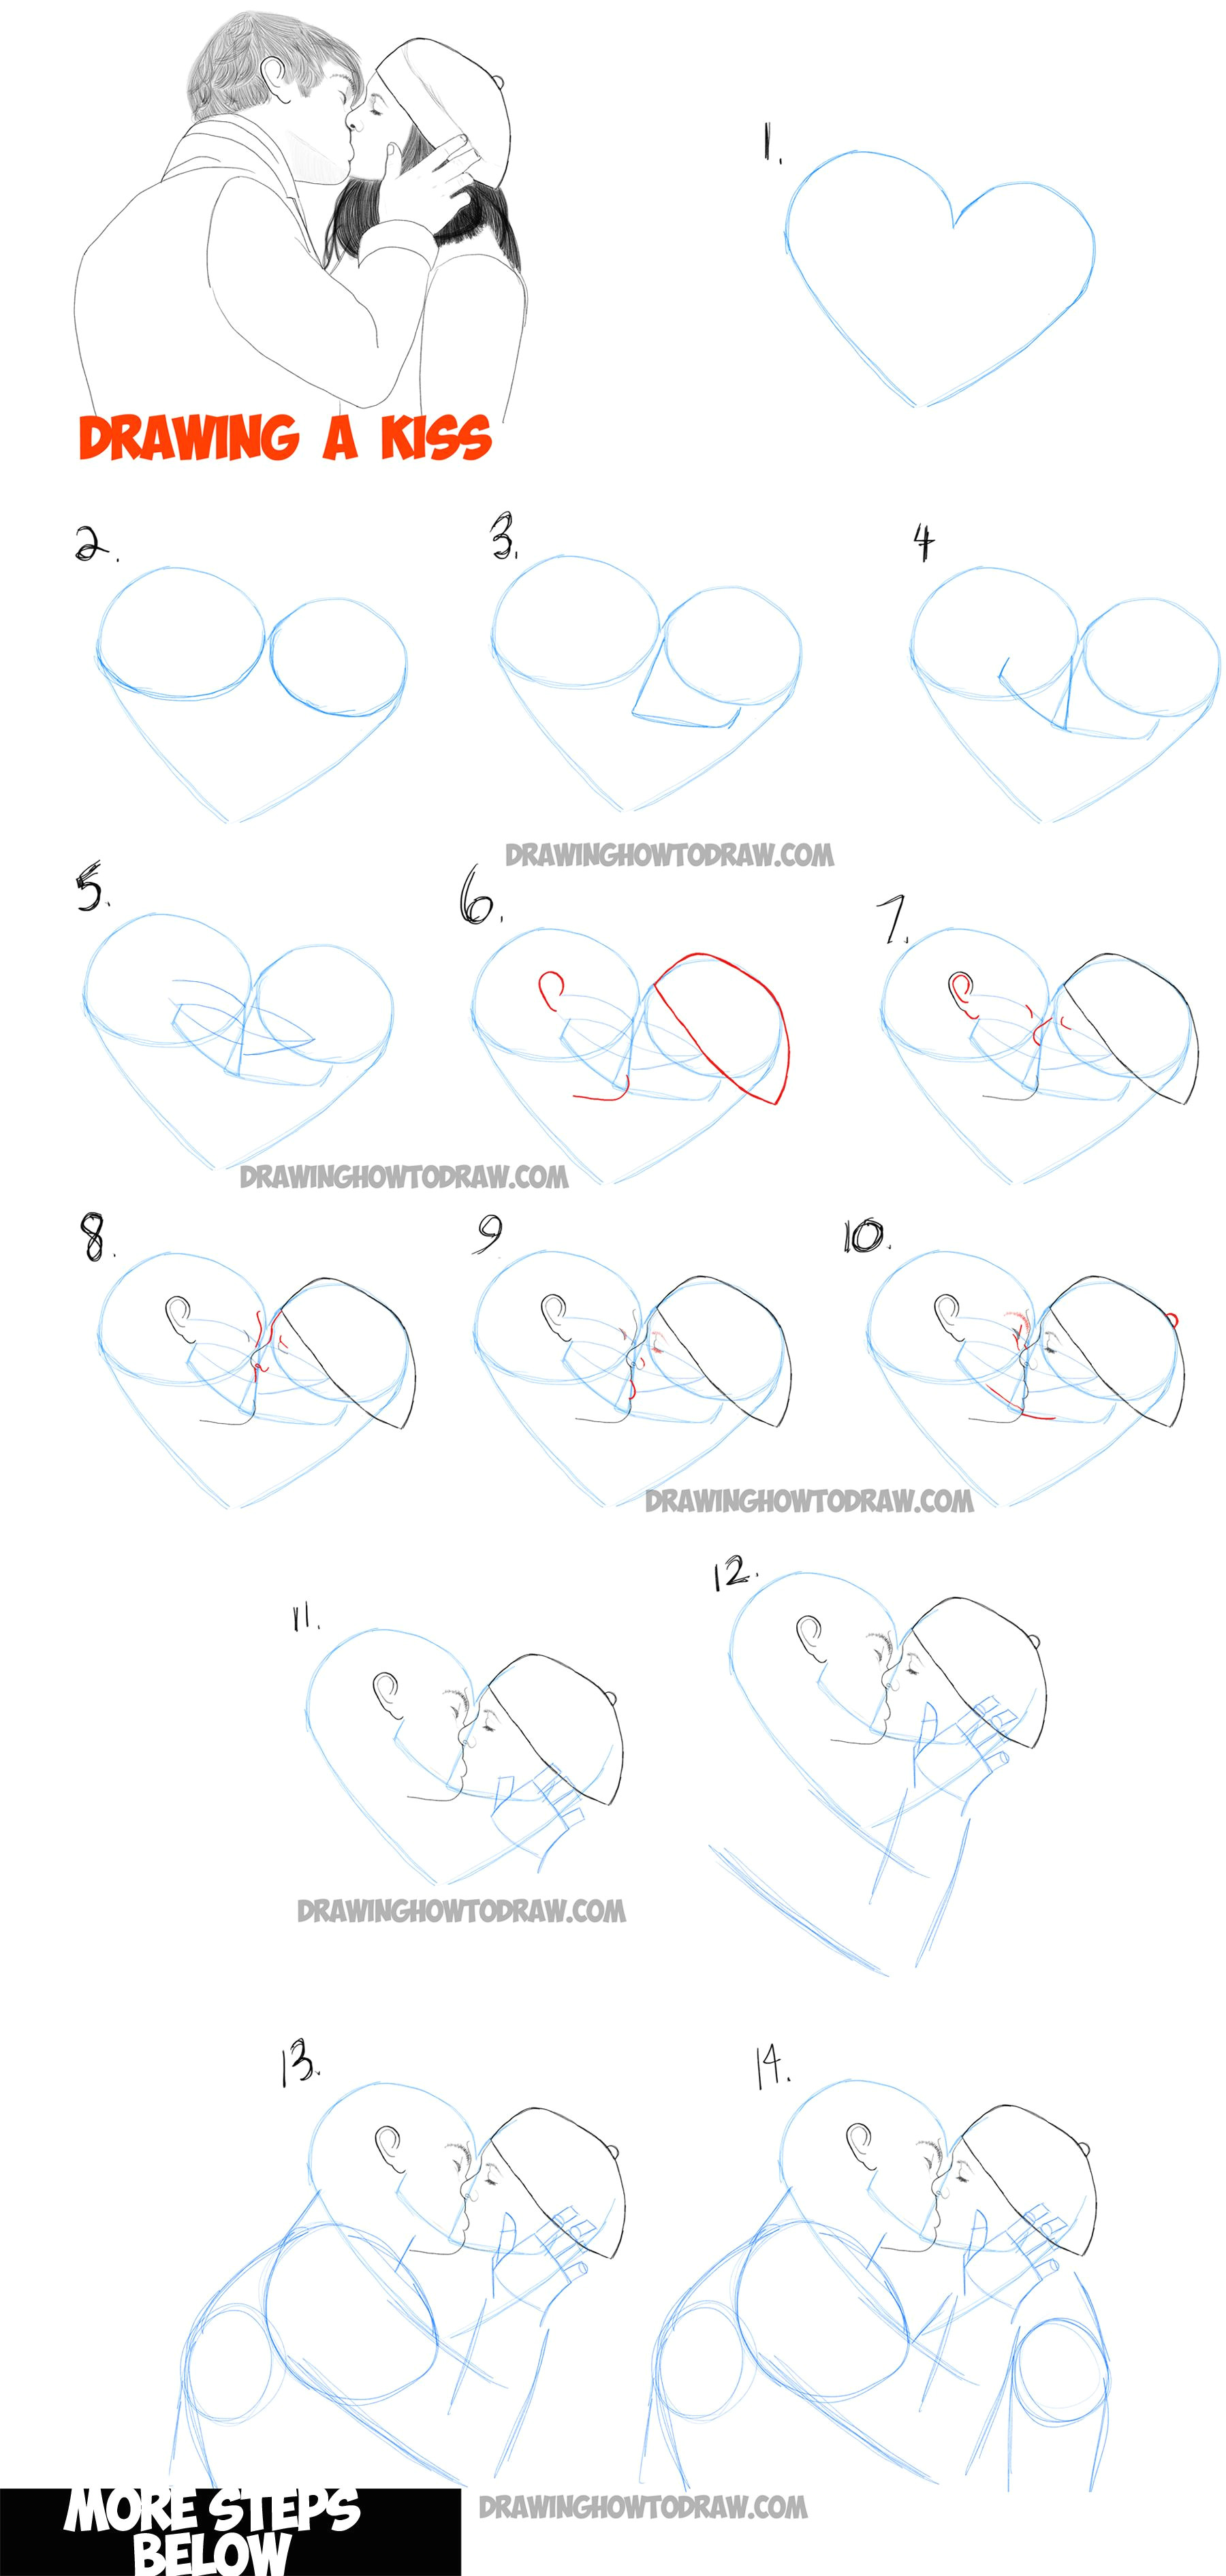 Easy Drawing 101 How to Draw Romantic Kisses Between Two Lovers Step by Step